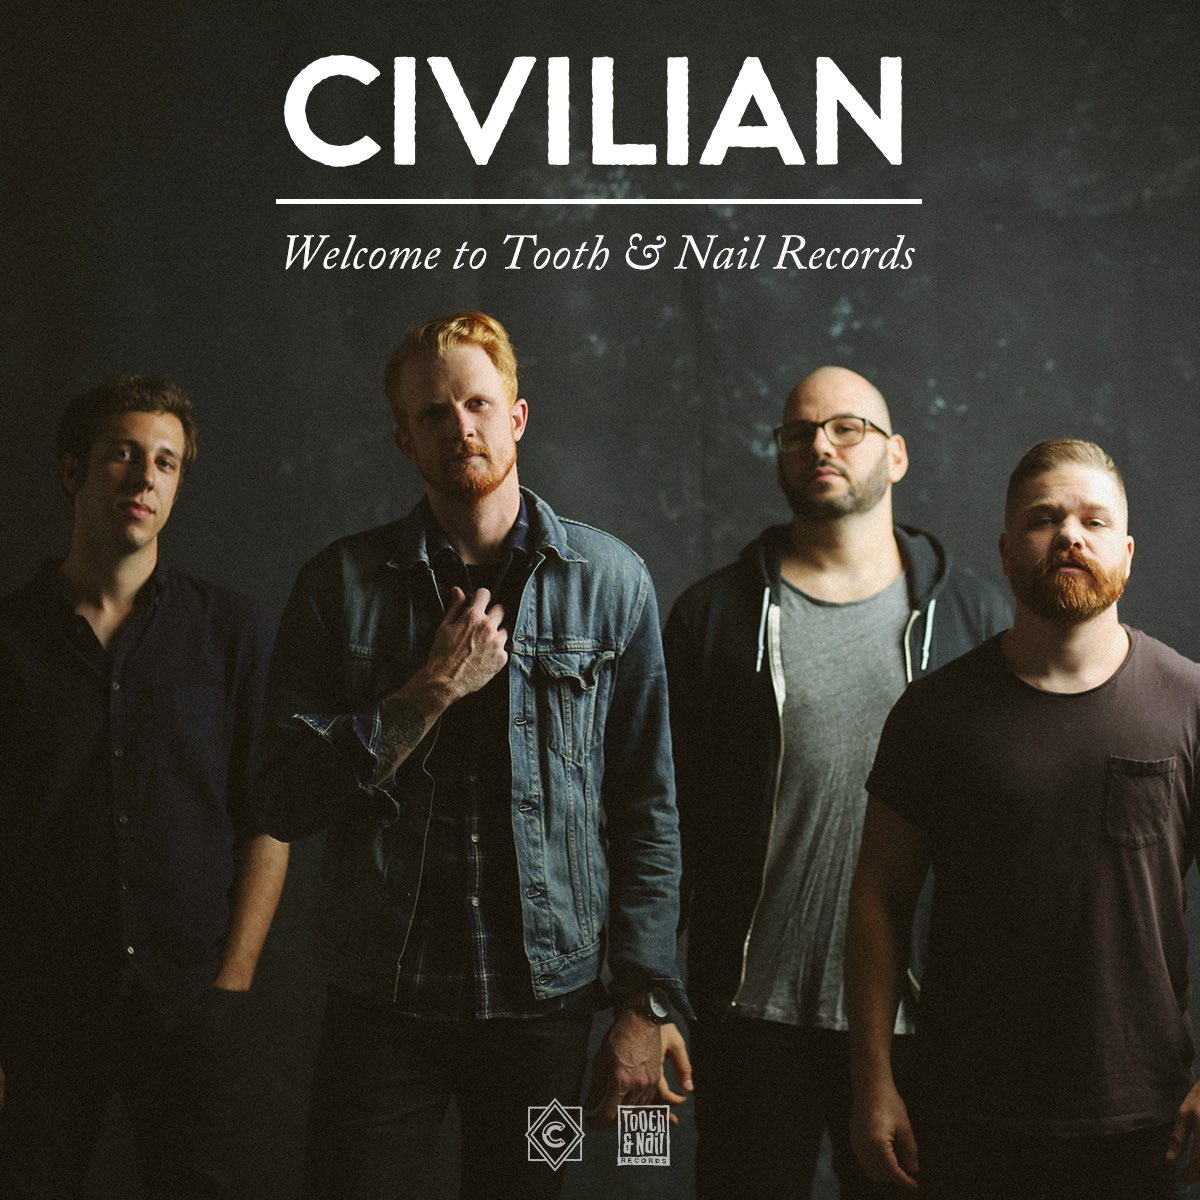 Civilian Welcome to Tooth & Nail Records